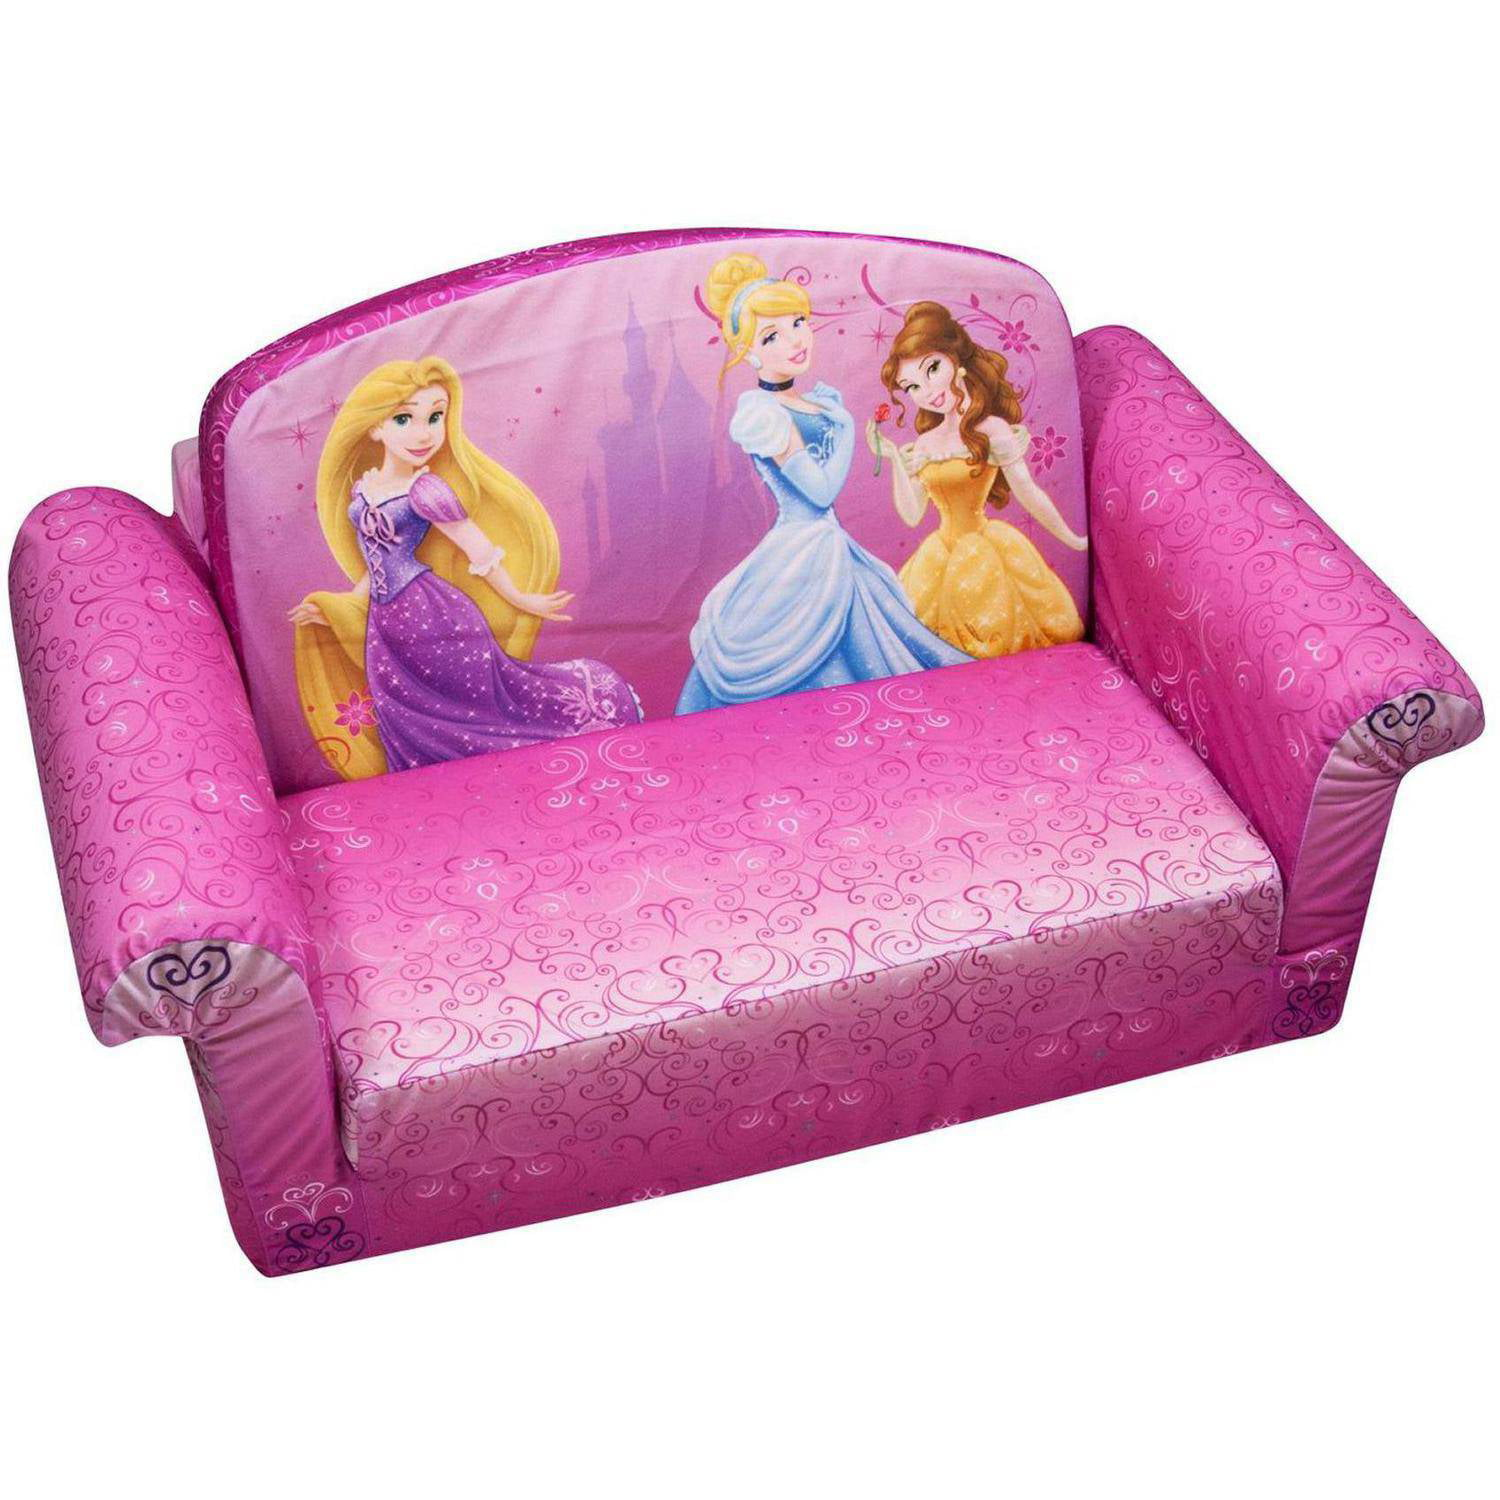 Superb Marshmallow 2 In 1 Flip Open Sofa, Disney Princess   Walmart.com